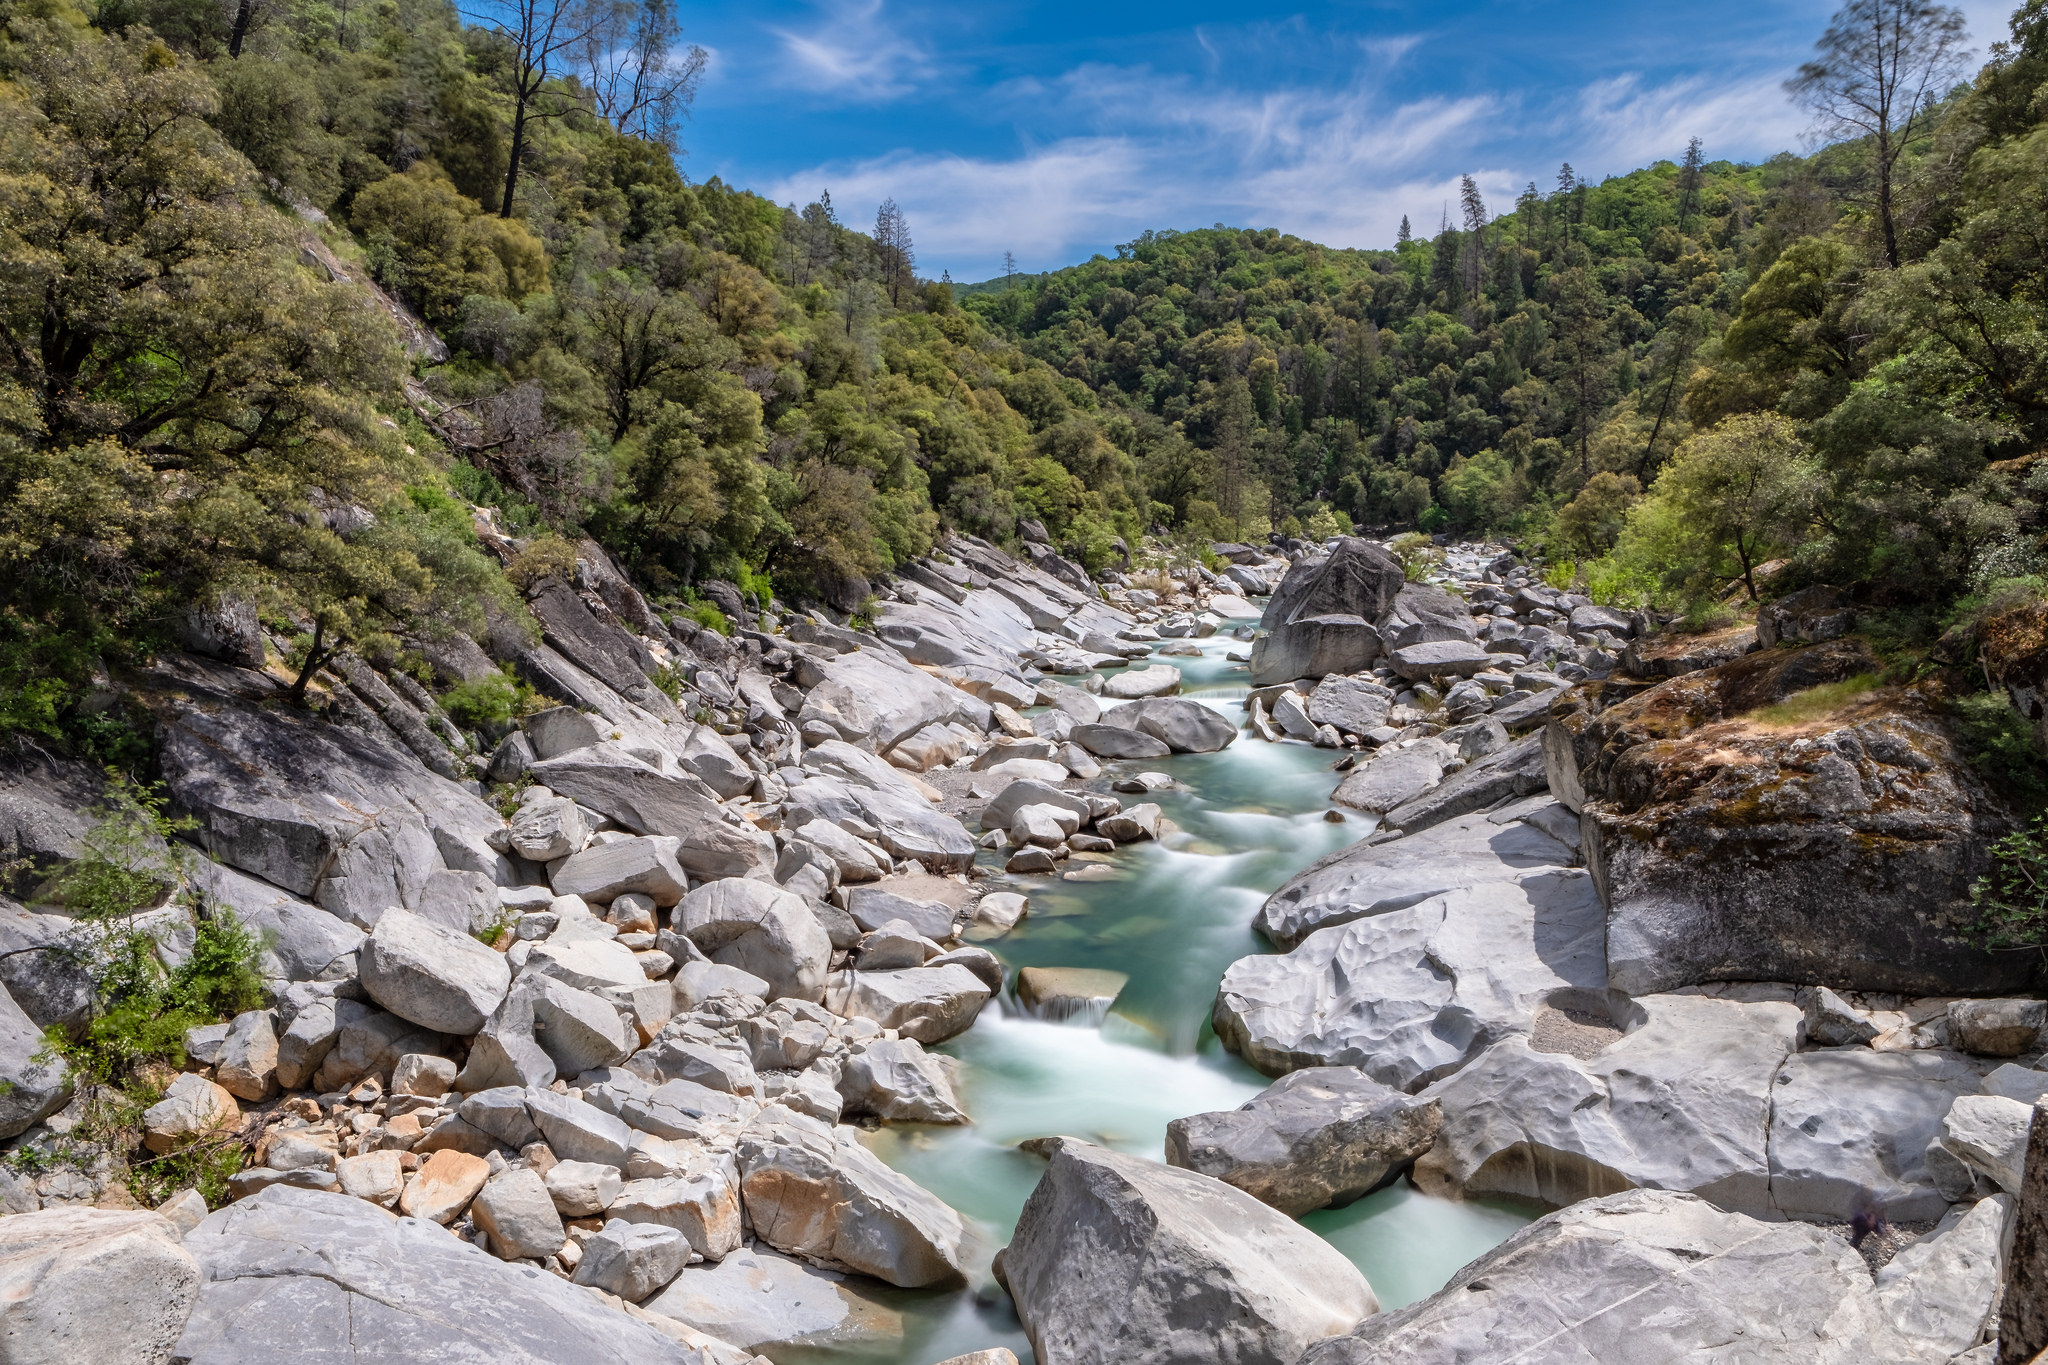 South Yuba River in Nevada City.  13 second exposure. f/16. ISO 100. 16mm lens. Mid day sun.